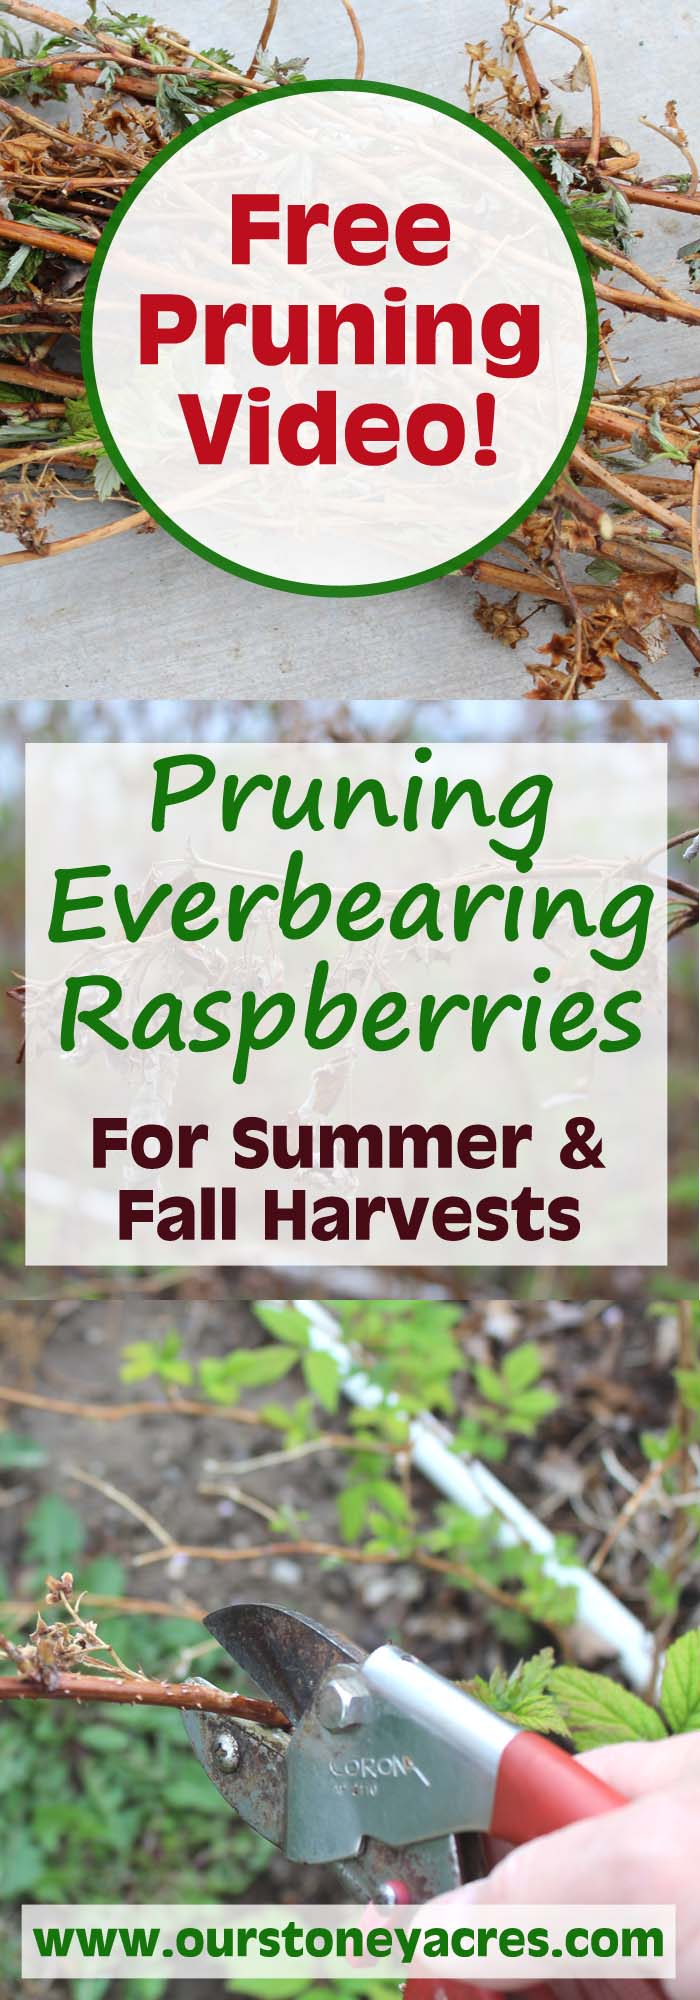 Pruning Everbearing Raspberries Video